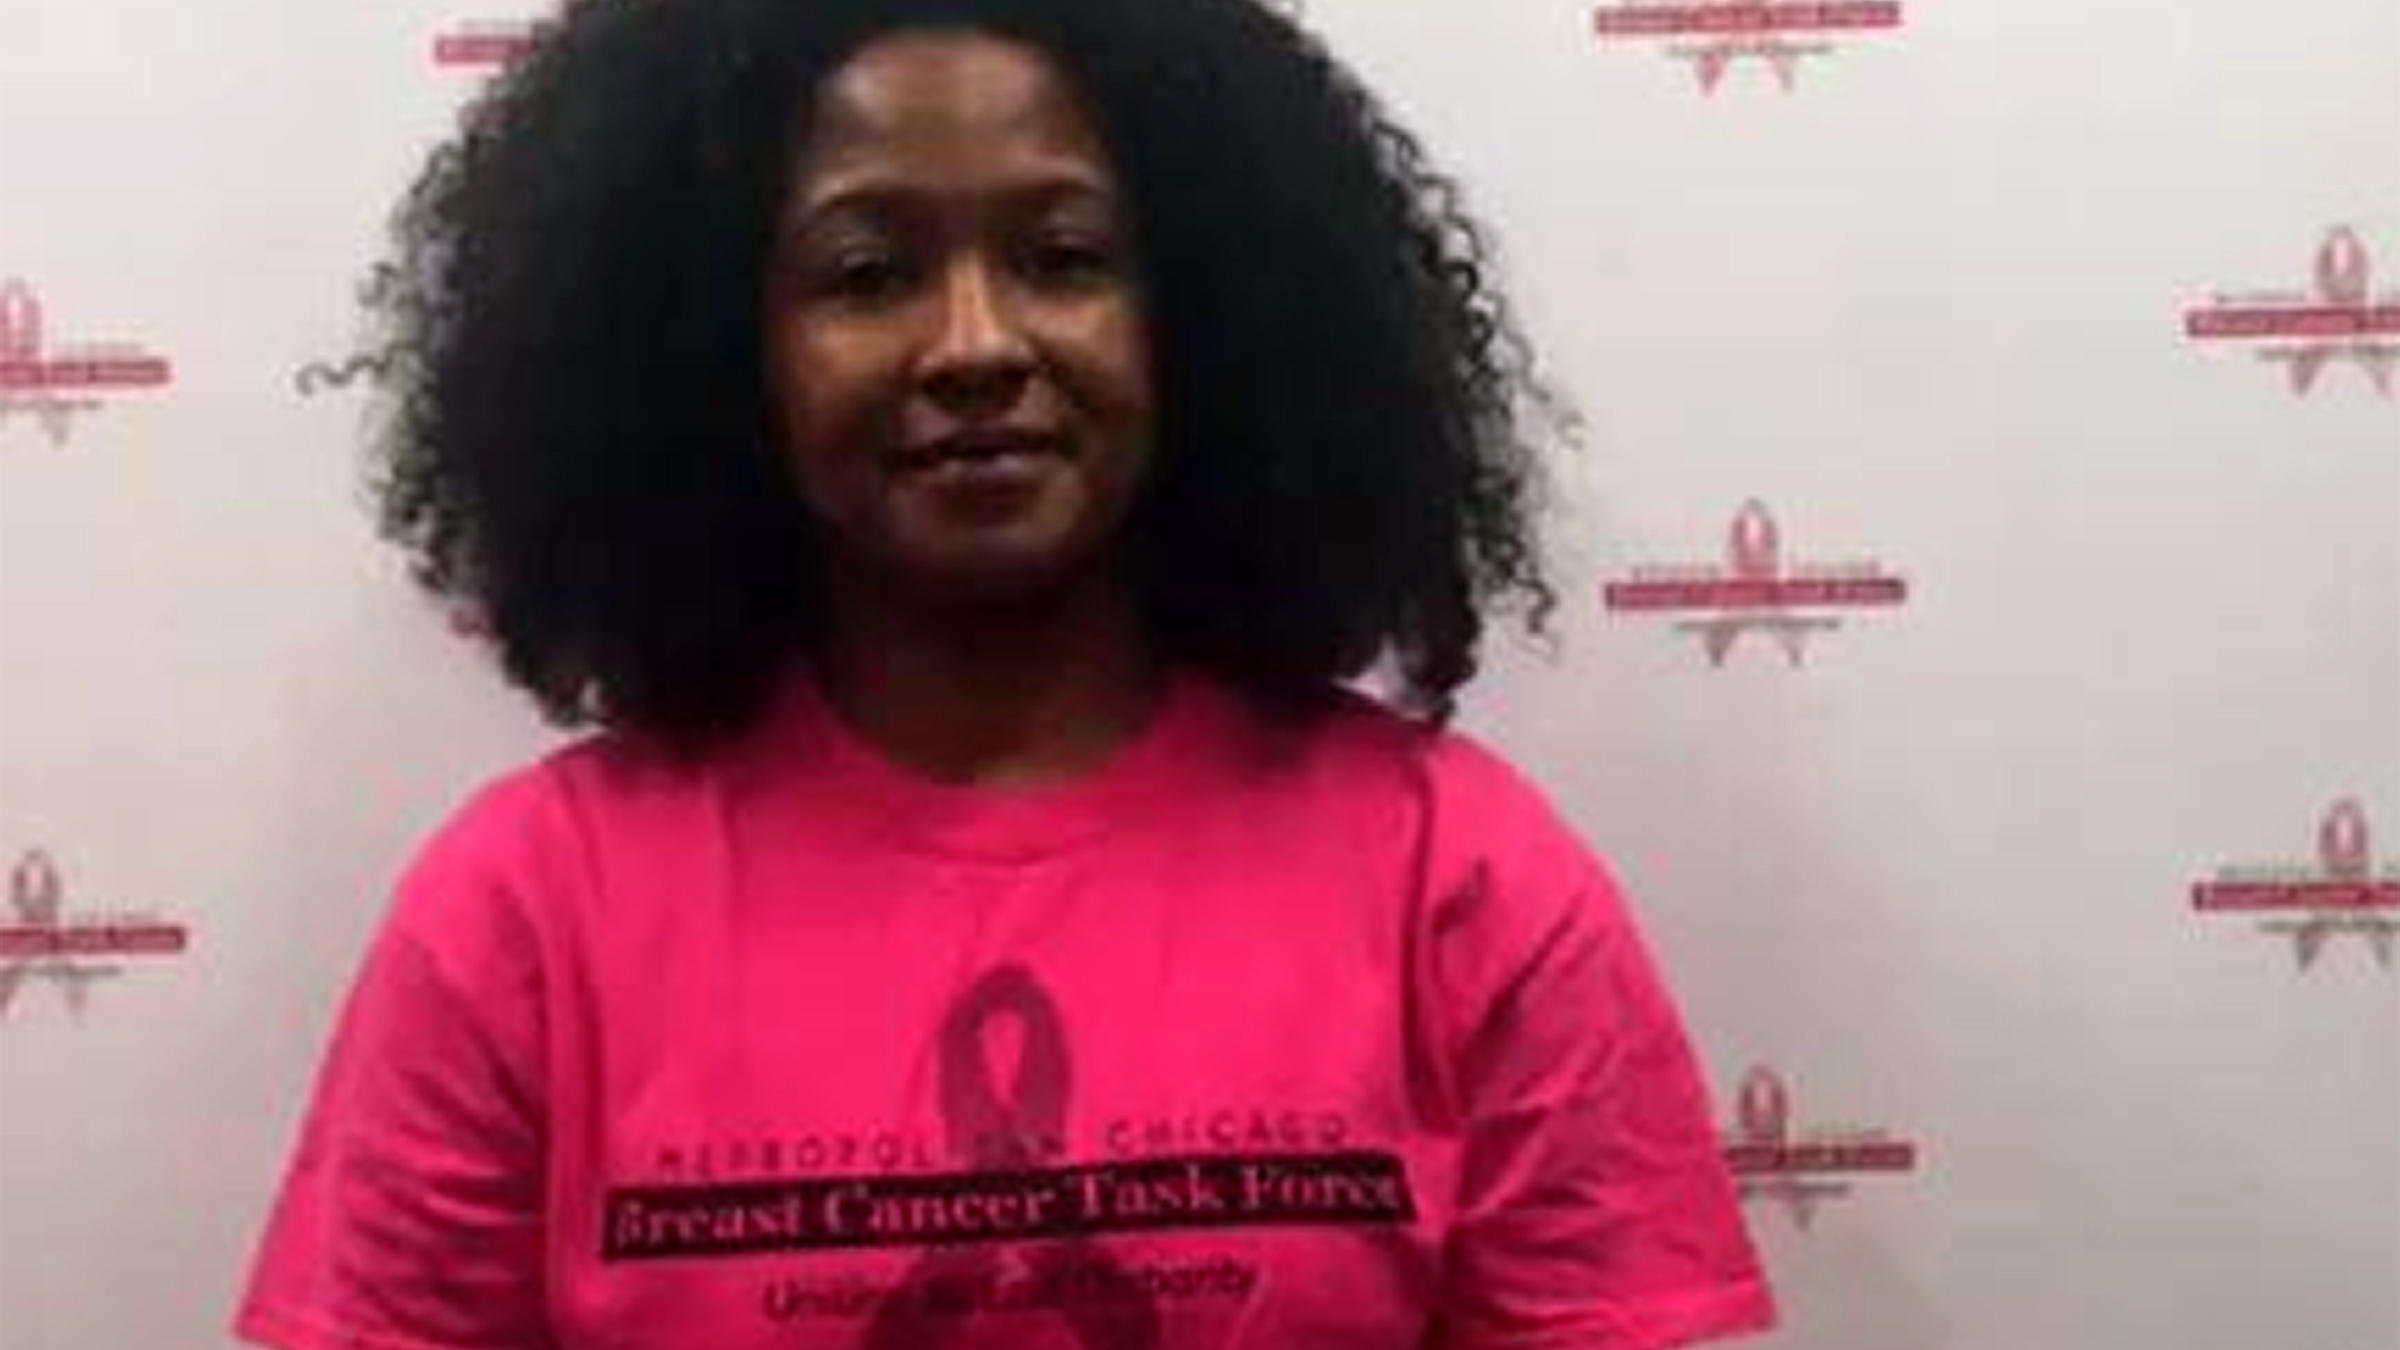 Teena Francois-Blue of the Metropolitan Breast Cancer Awareness Task Force,  held a dueling Facebook Live event following Gov. Bruce Rauner's Wednesday.